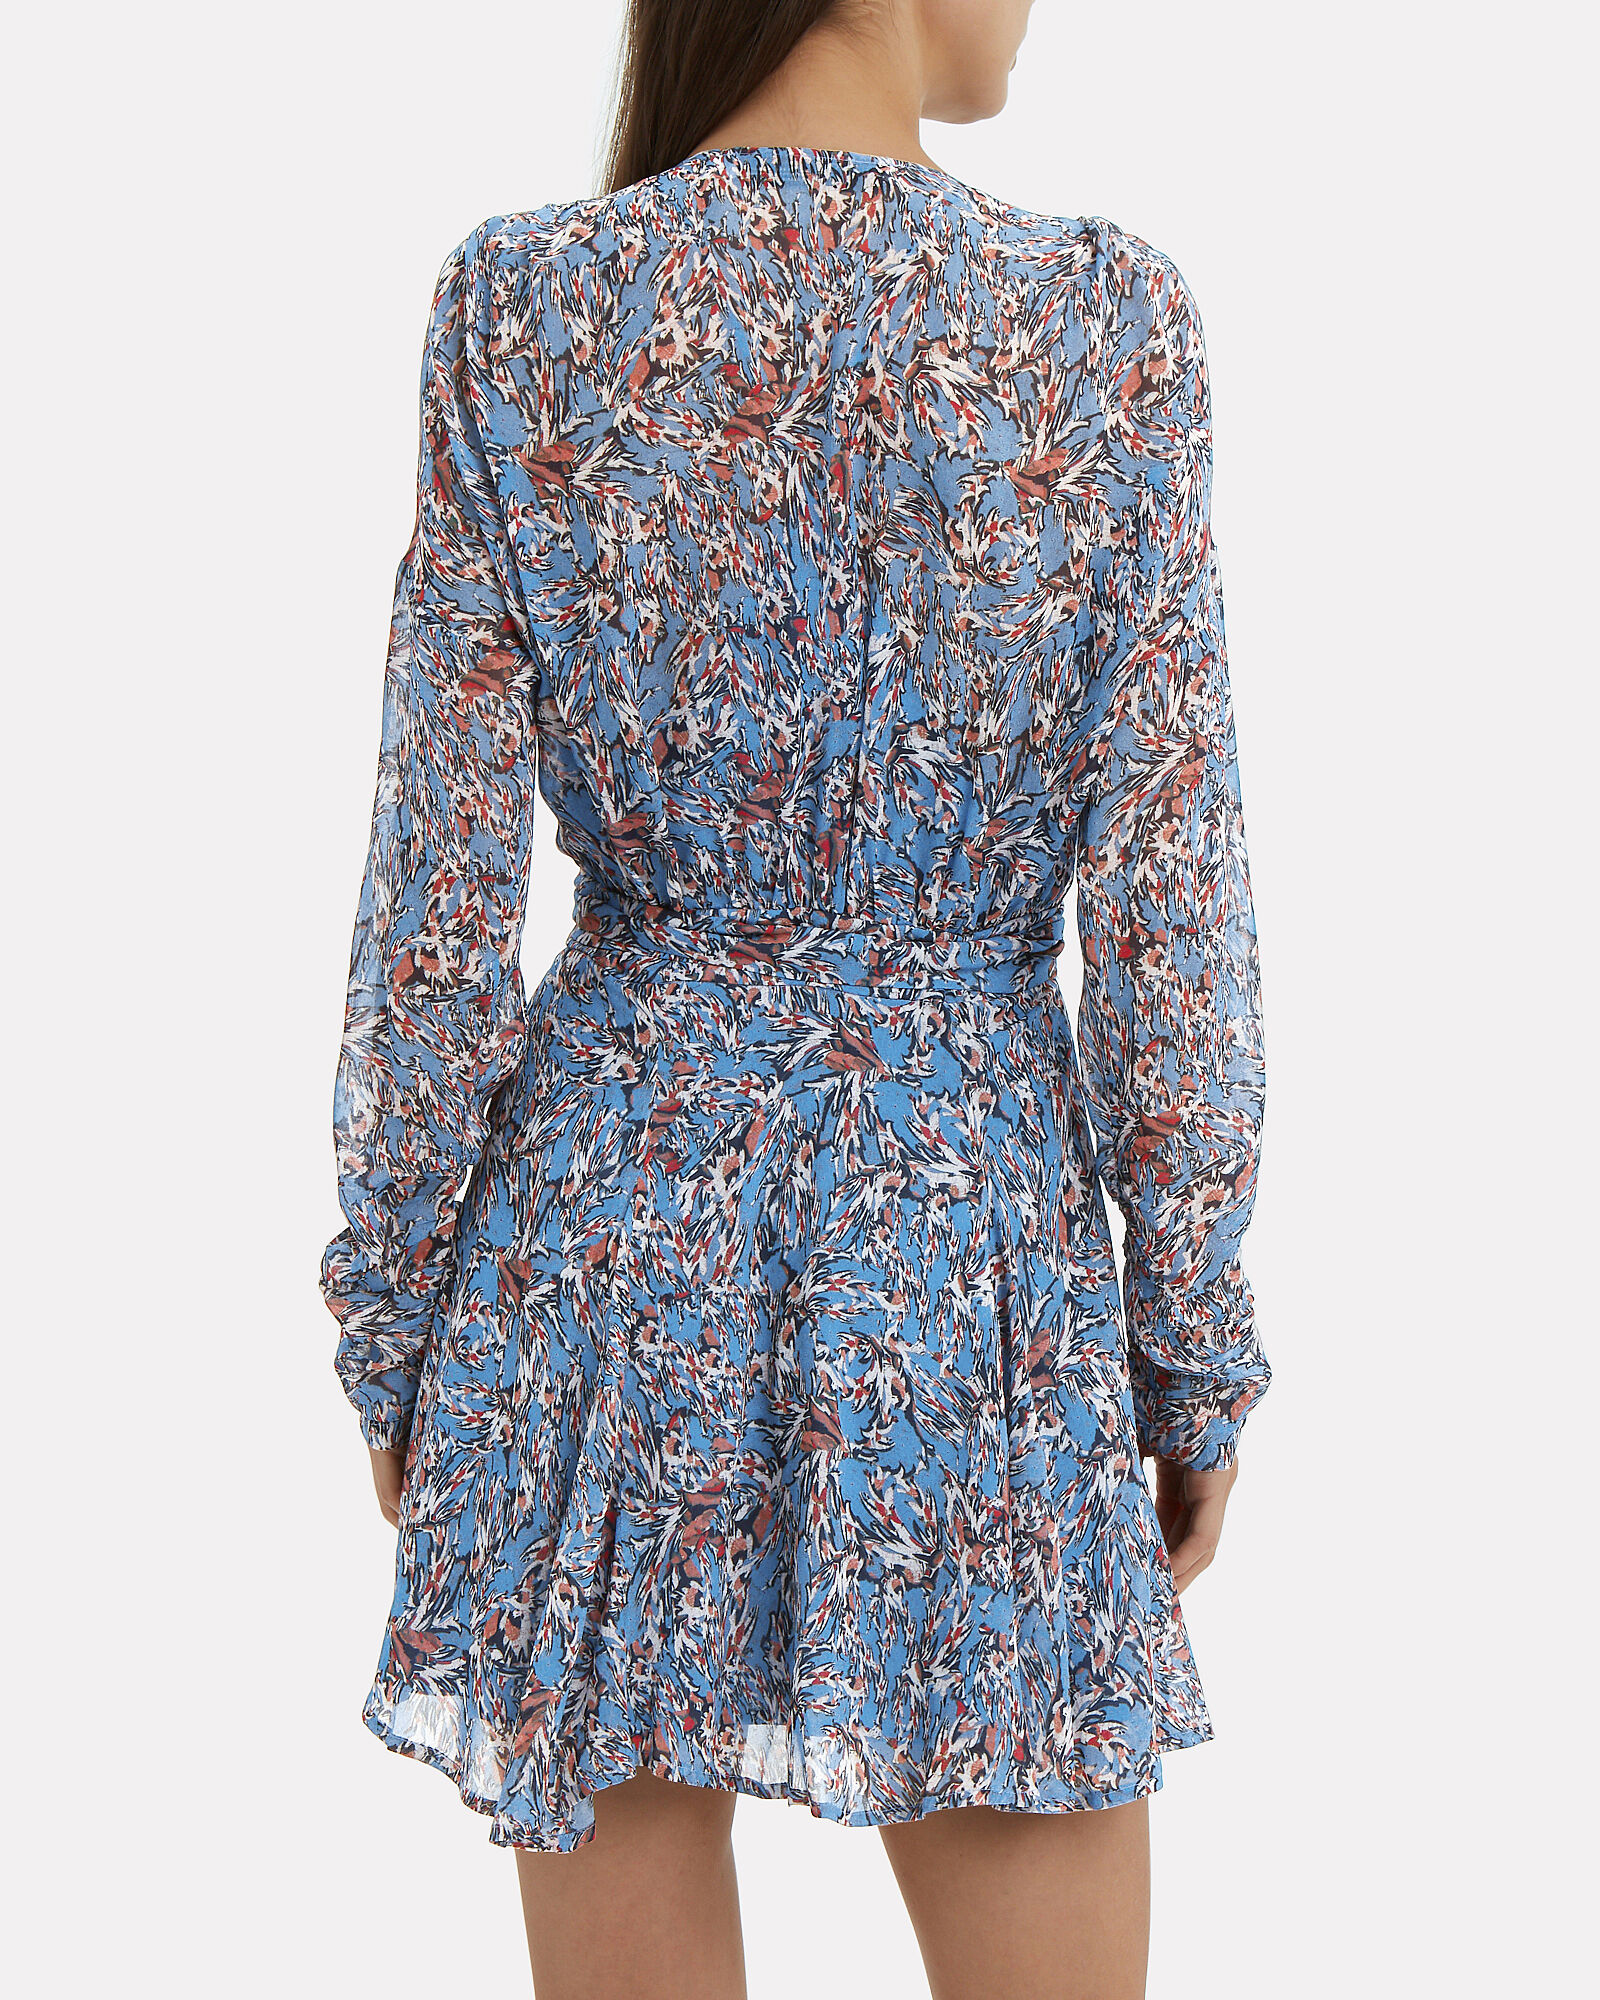 Bustle Mini Dress, BLUE-LT, hi-res